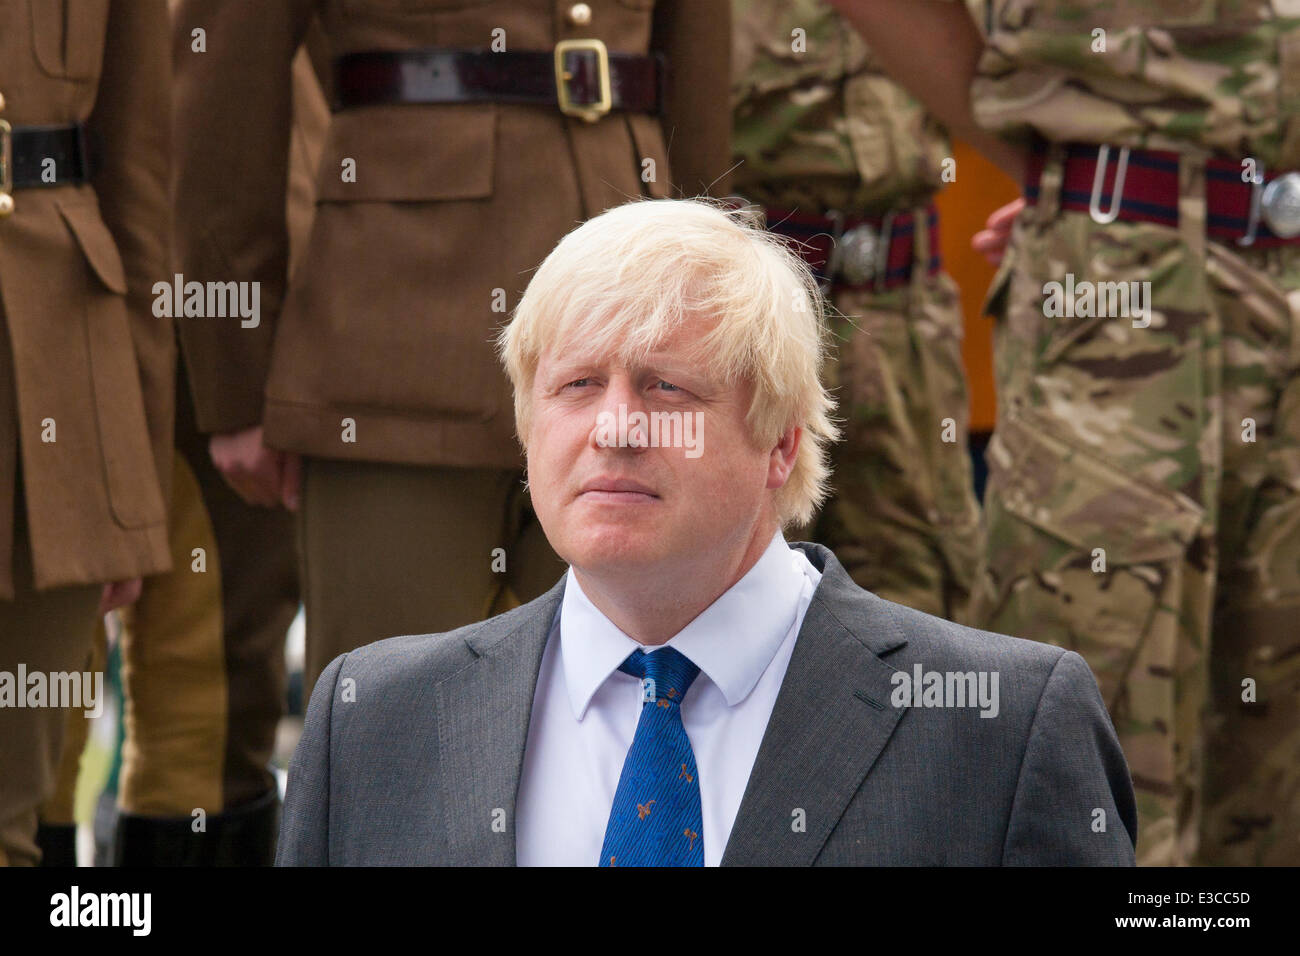 London, UK. 23rd June, 2014. Mayor Boris Johnson listens to speeches as members and veterans of the armed forces - Stock Image